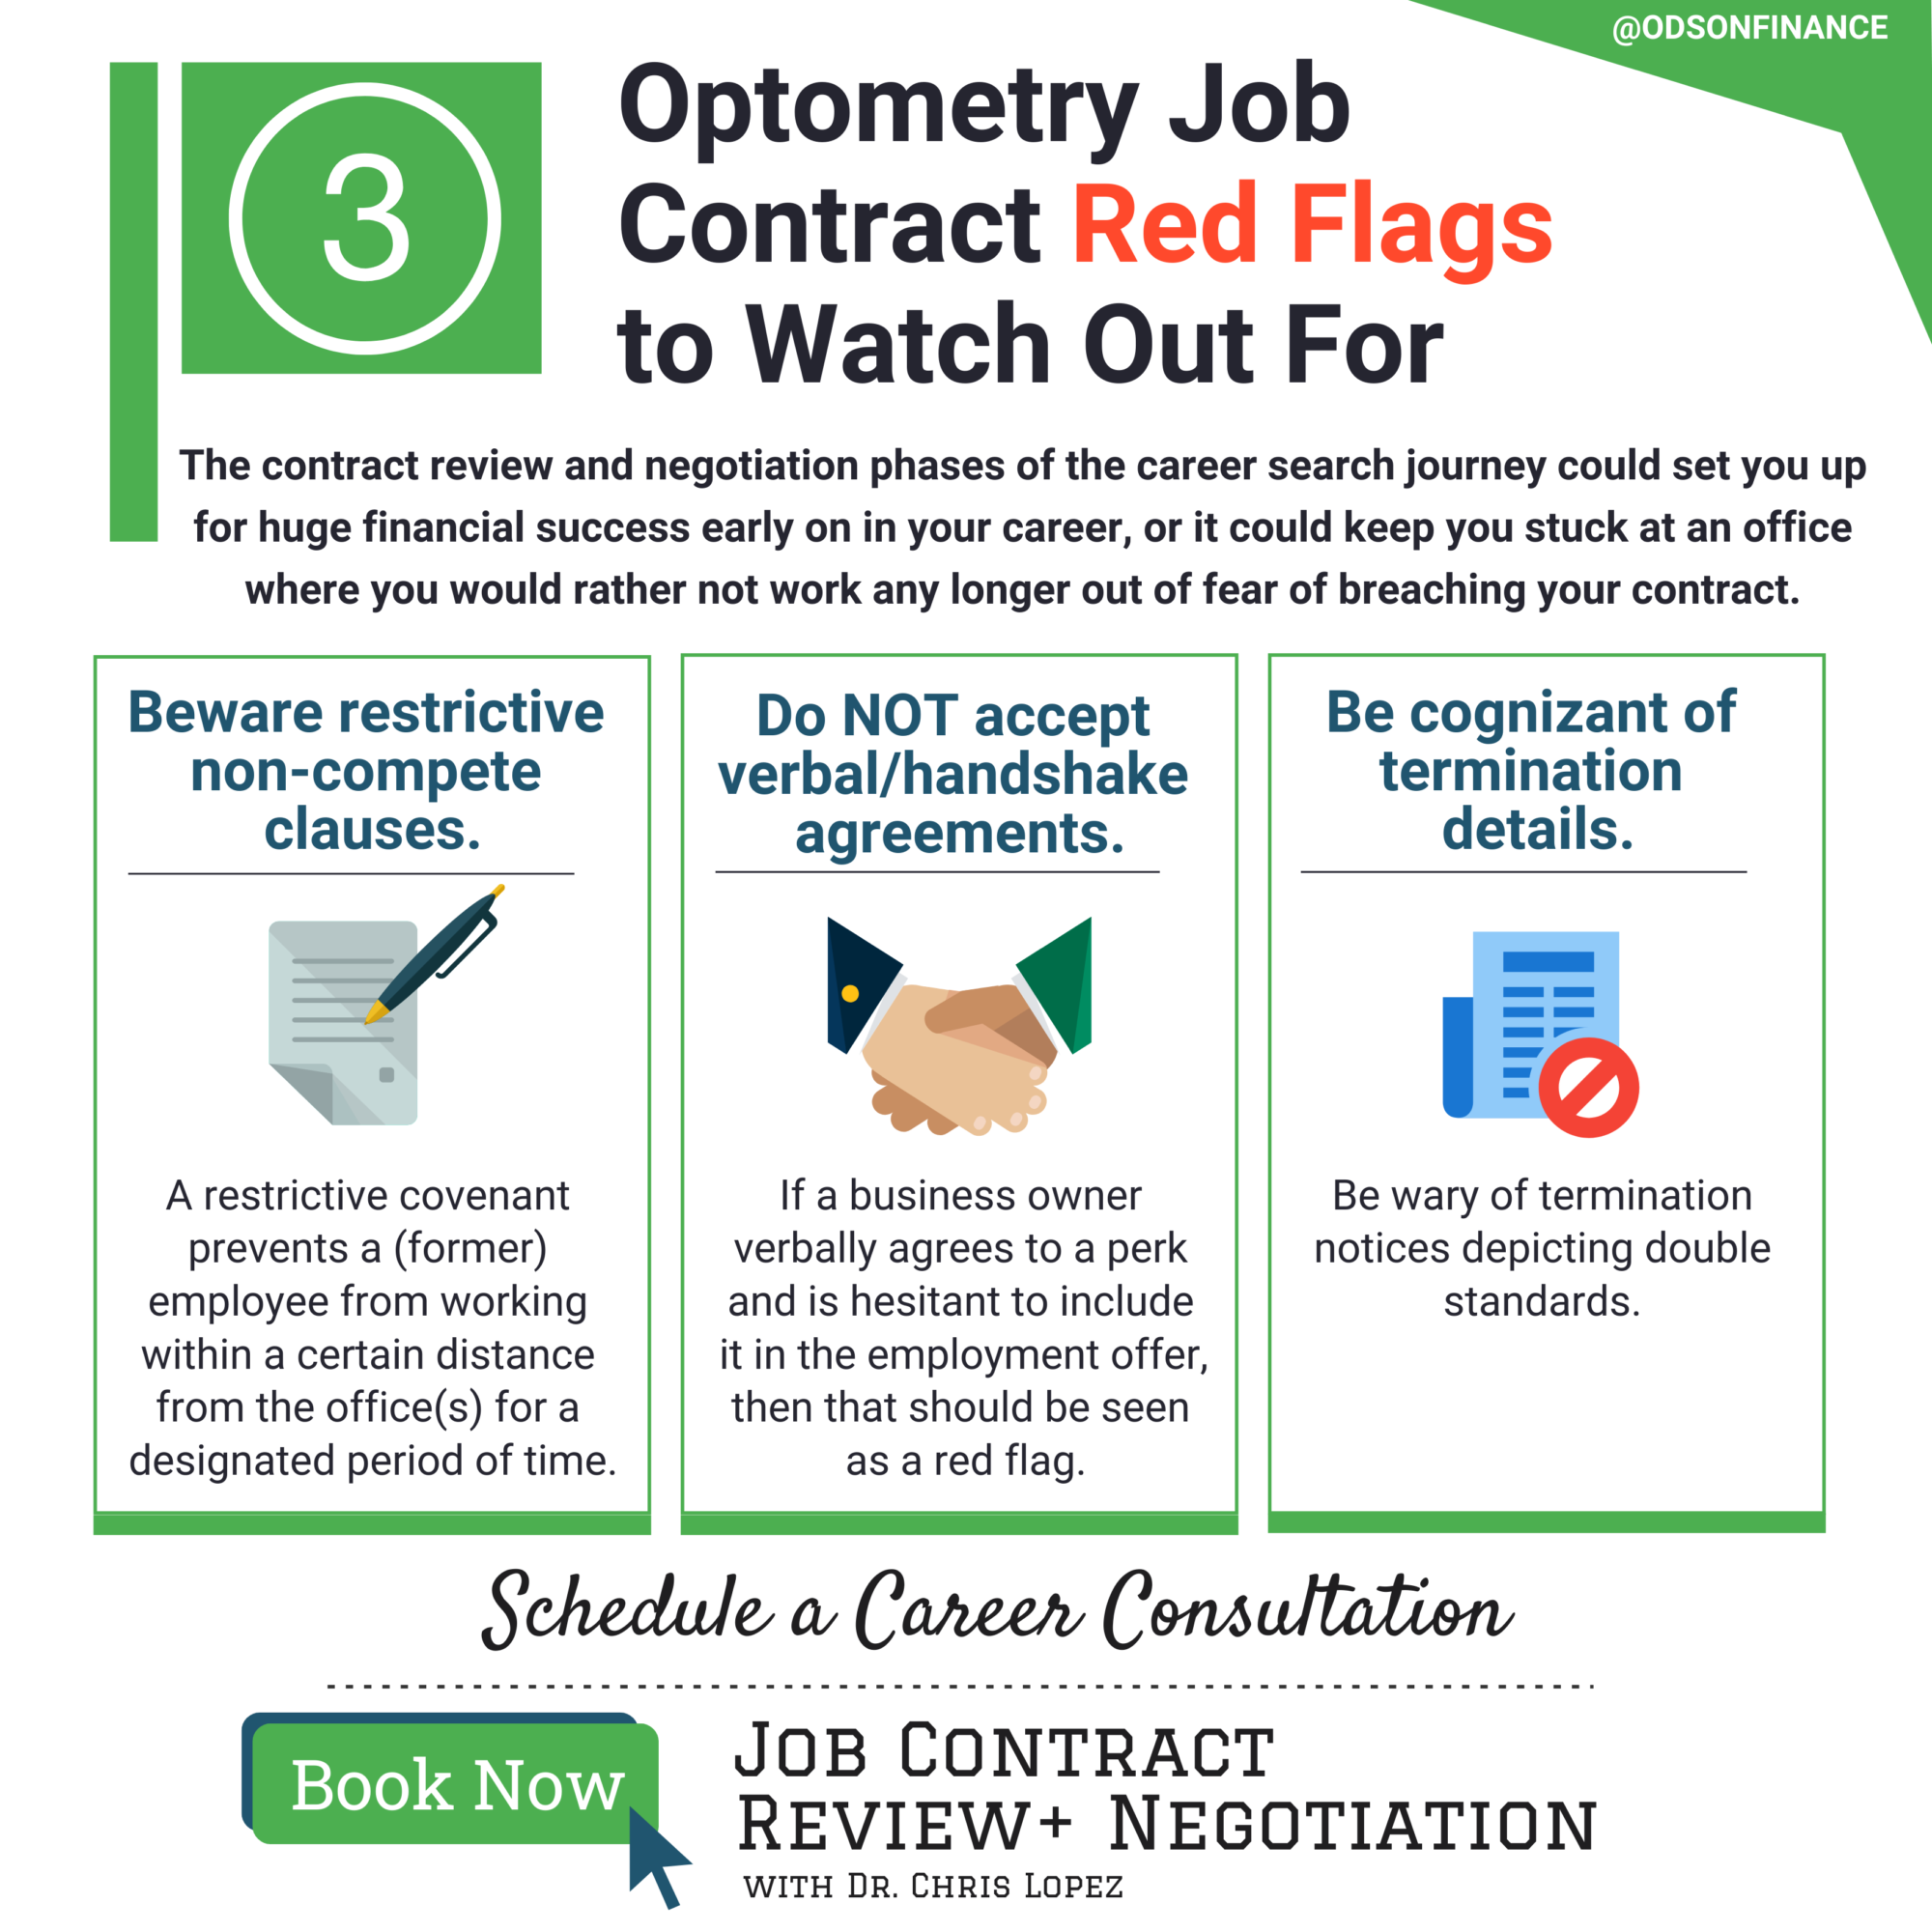 Optometry Job Contract Red Flags to Watch Out For